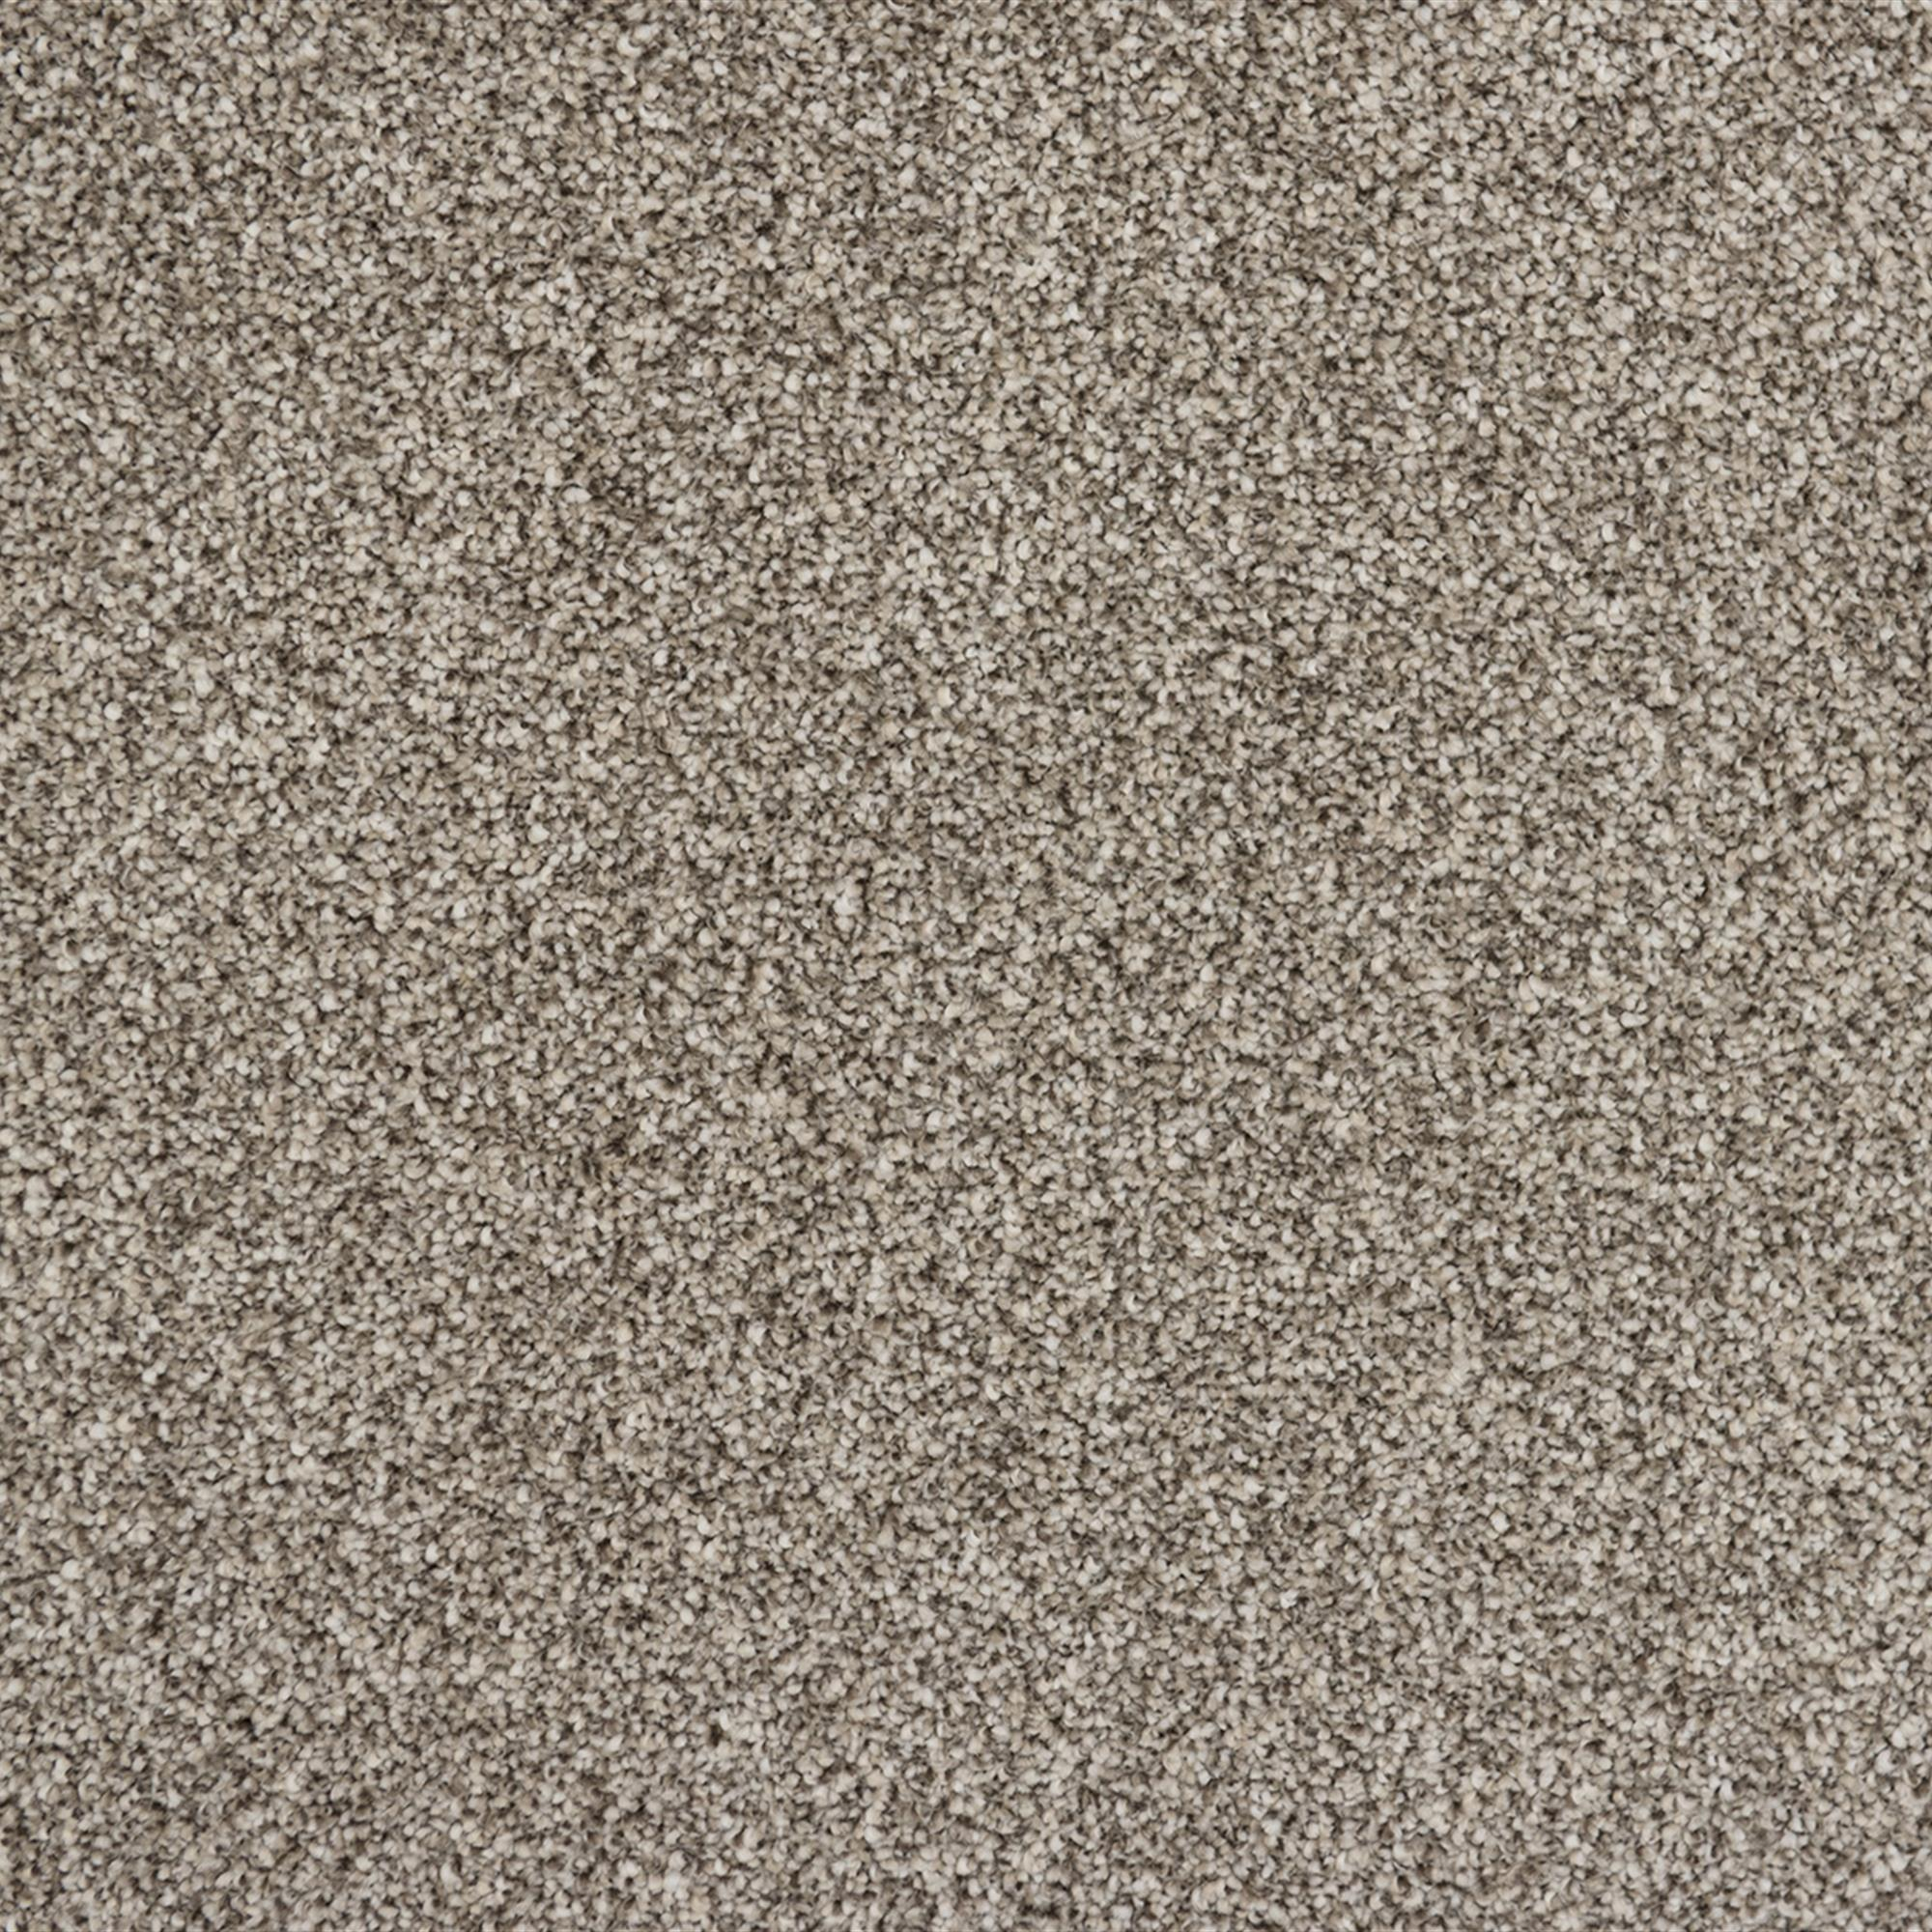 Invictus Peconic Carpet, 9 Highgate, swatch